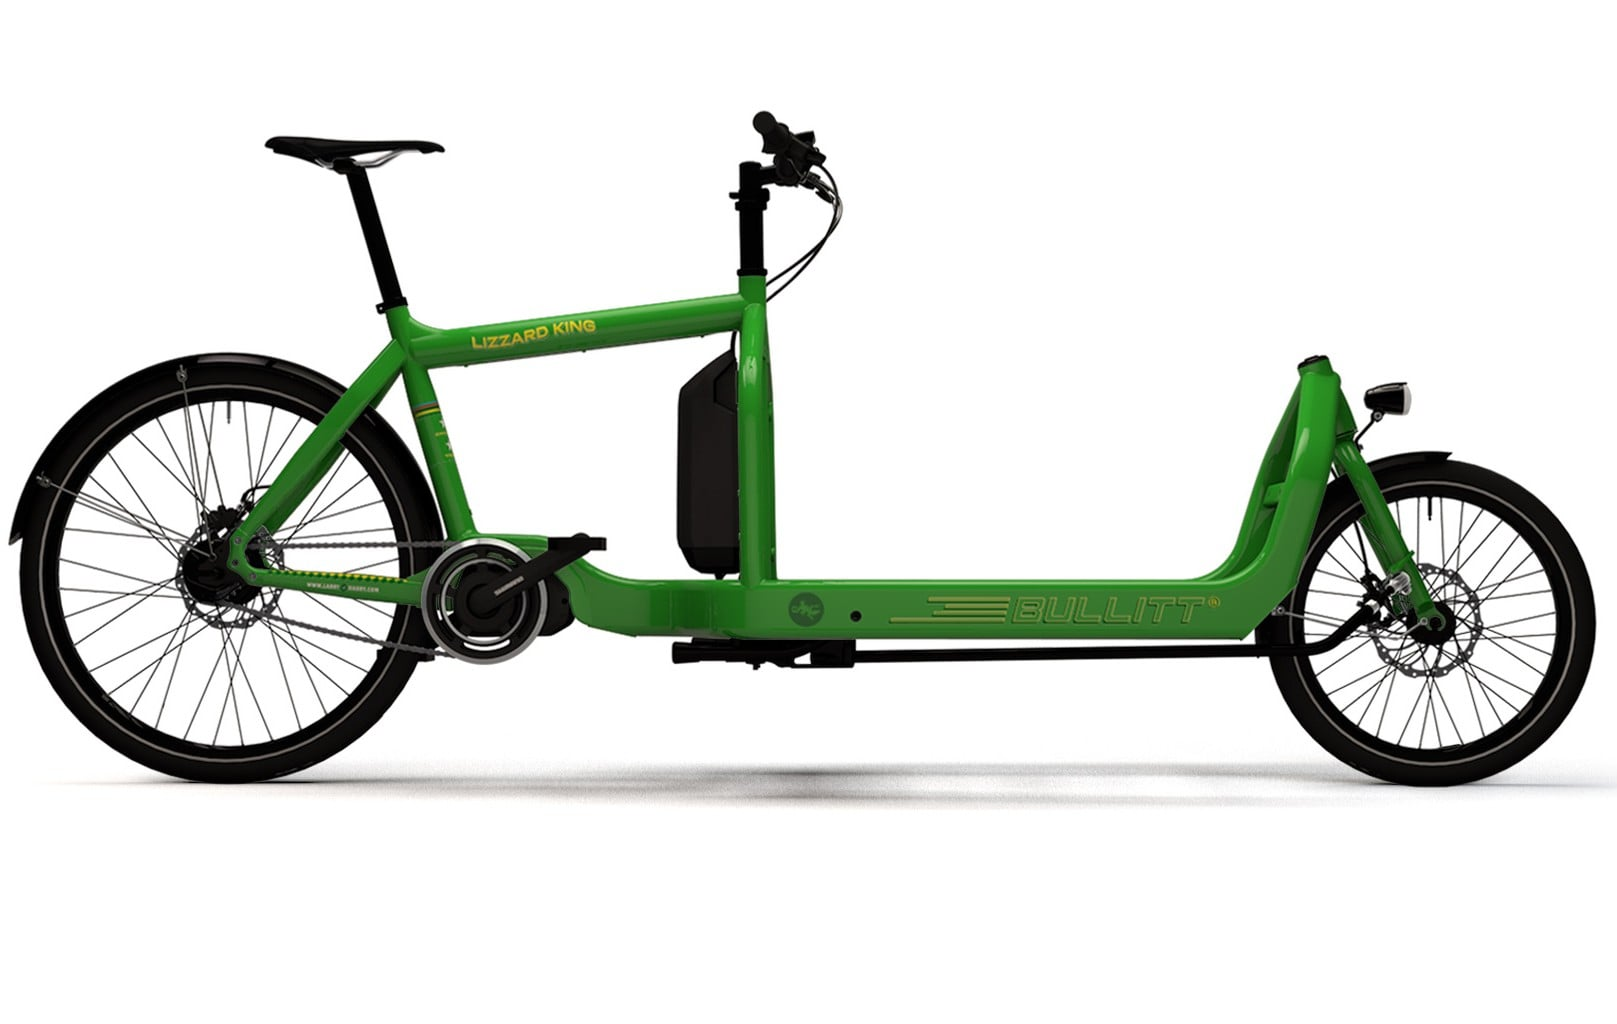 Bullitt Cargo bikes by Harry vs. Larry at London Green Cycles